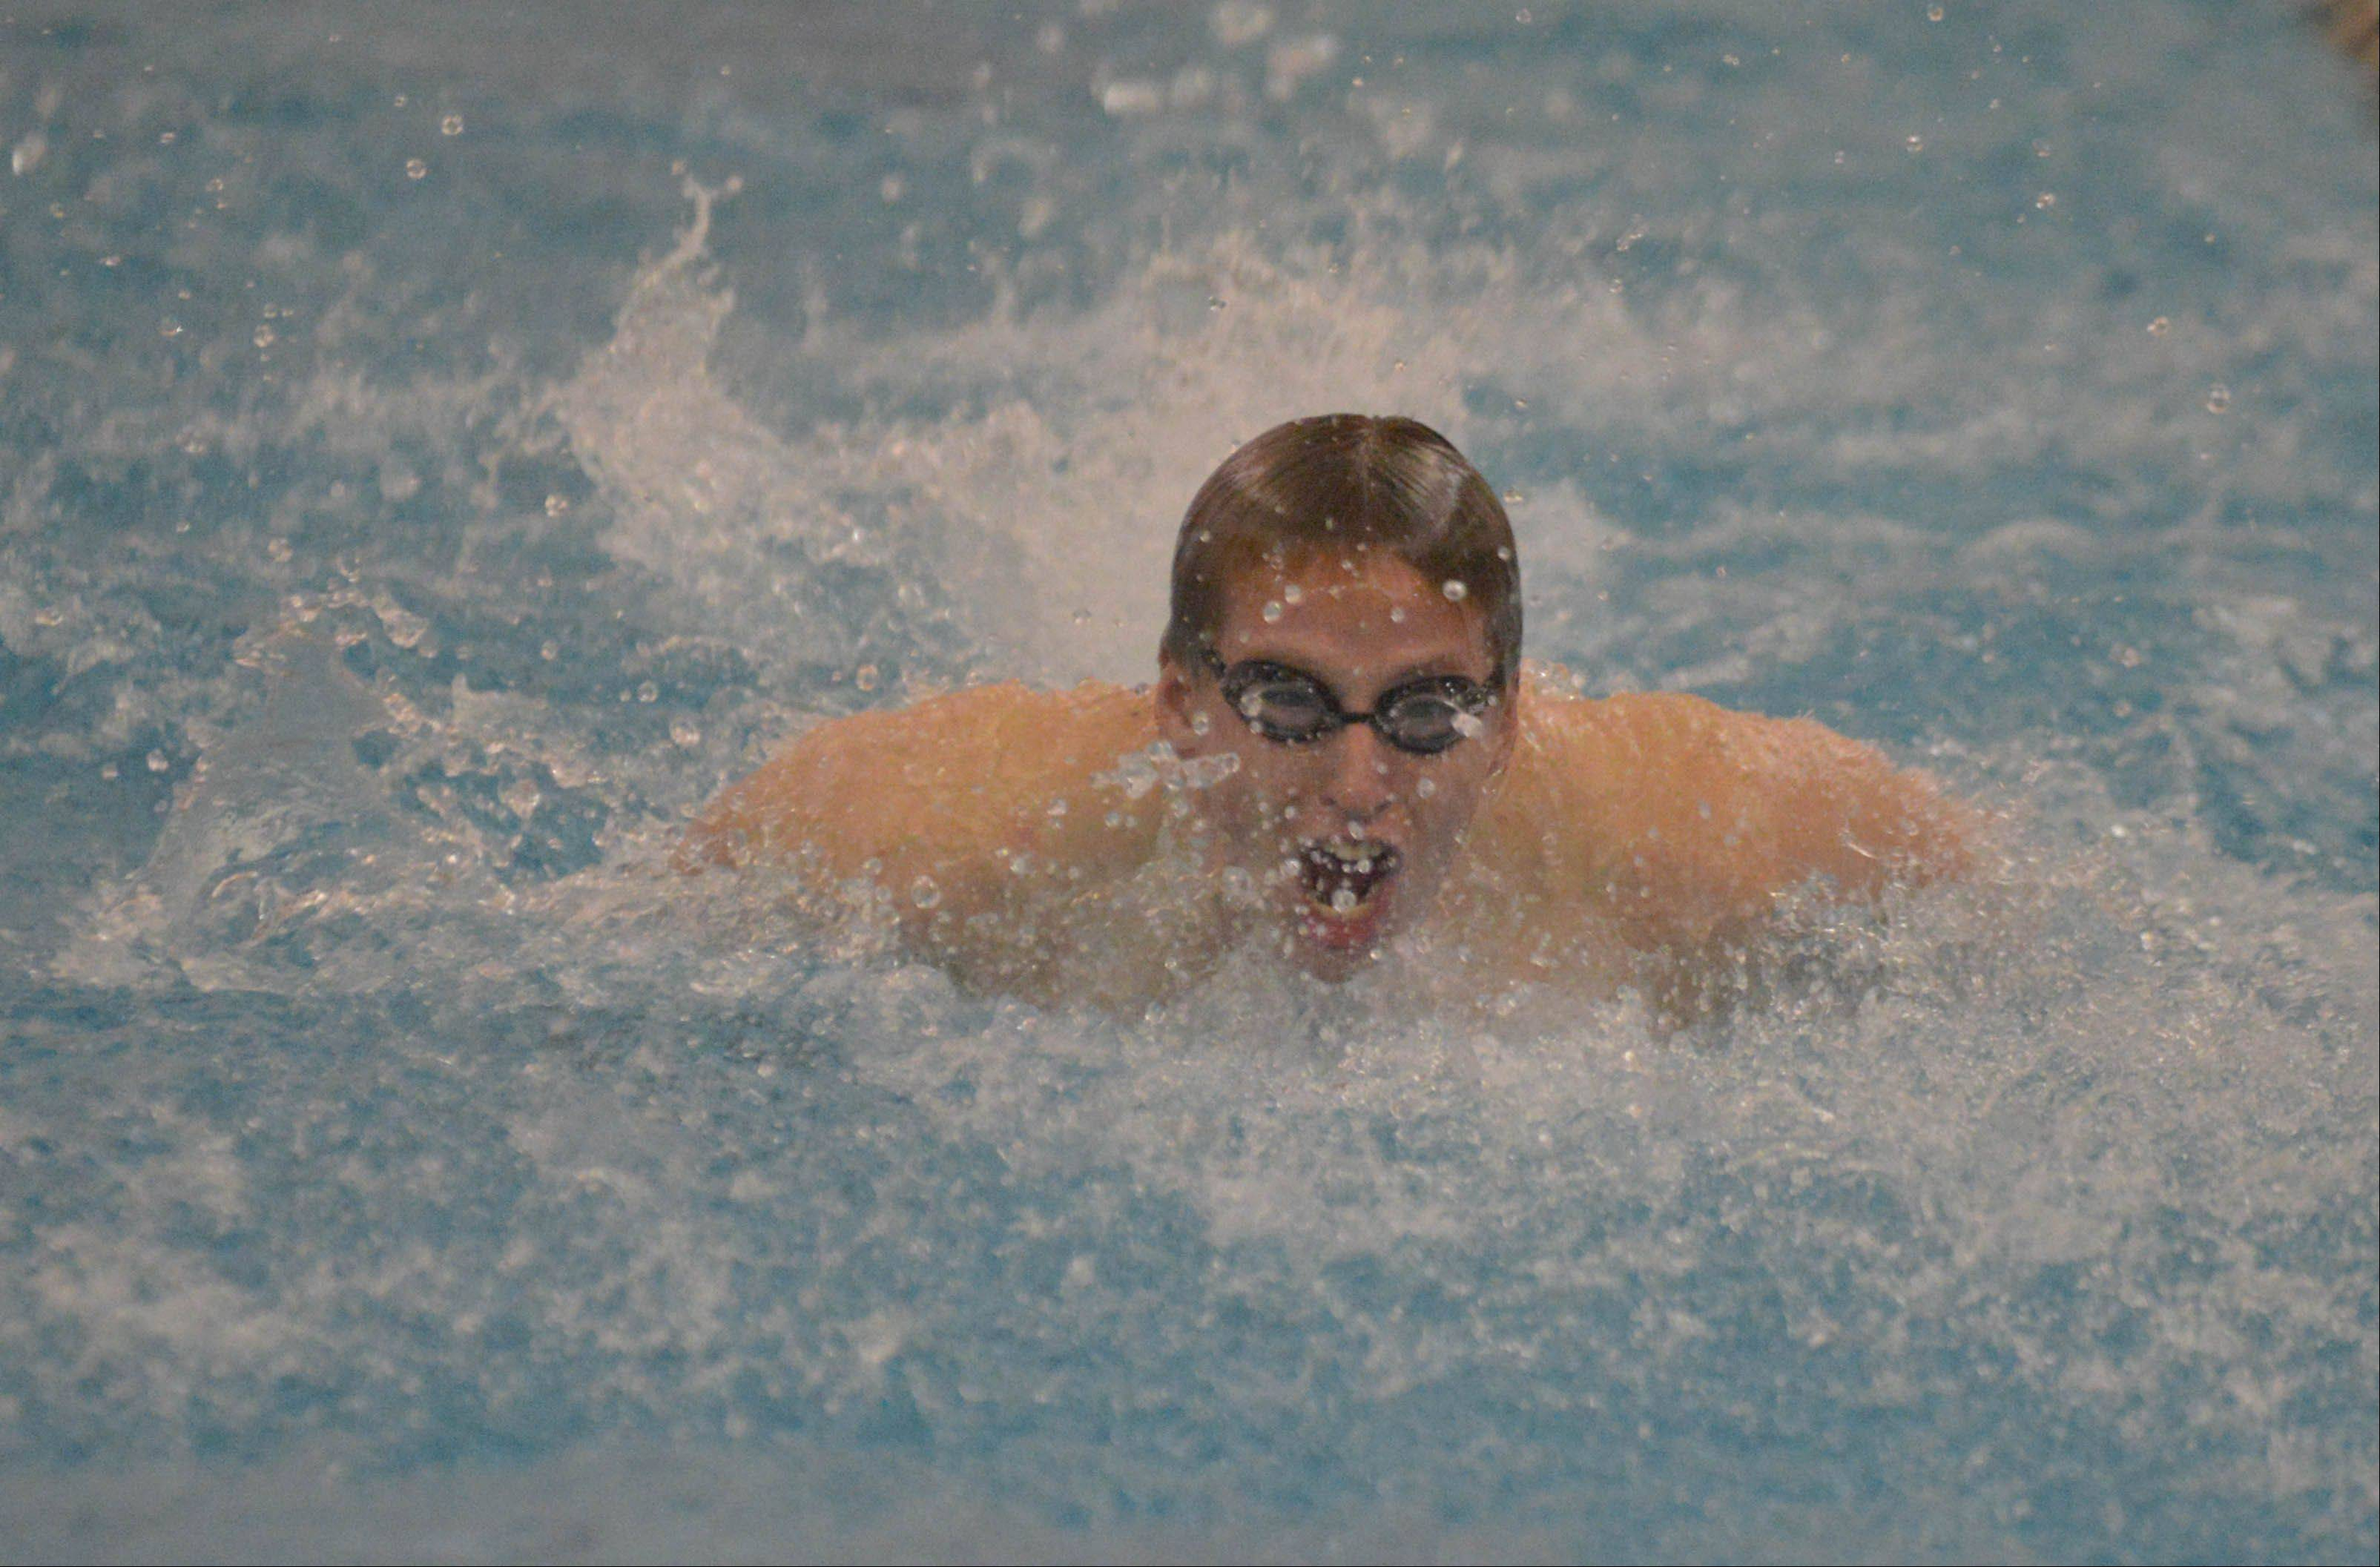 Tim Steele of Saint Charles North during the 200 Yard Medley Relay at the Neuqua Valley boys swimming invitational Saturday.